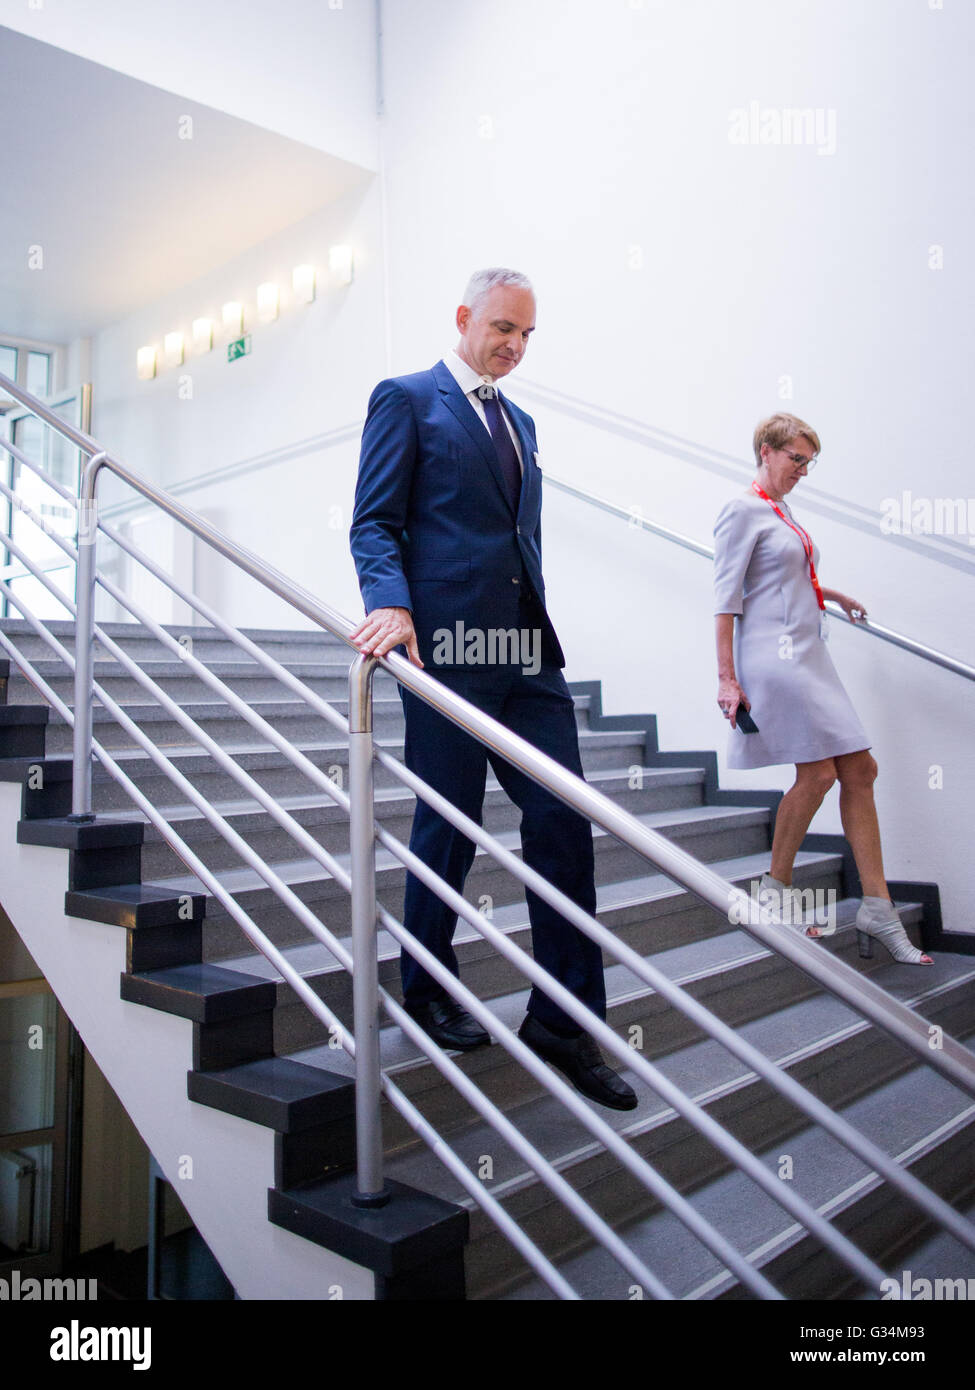 Essen, Germany. 8th June, 2016. Johannes Teyssen, CEO of energy comapny eon, walks down the stairs at the company's Stock Photo